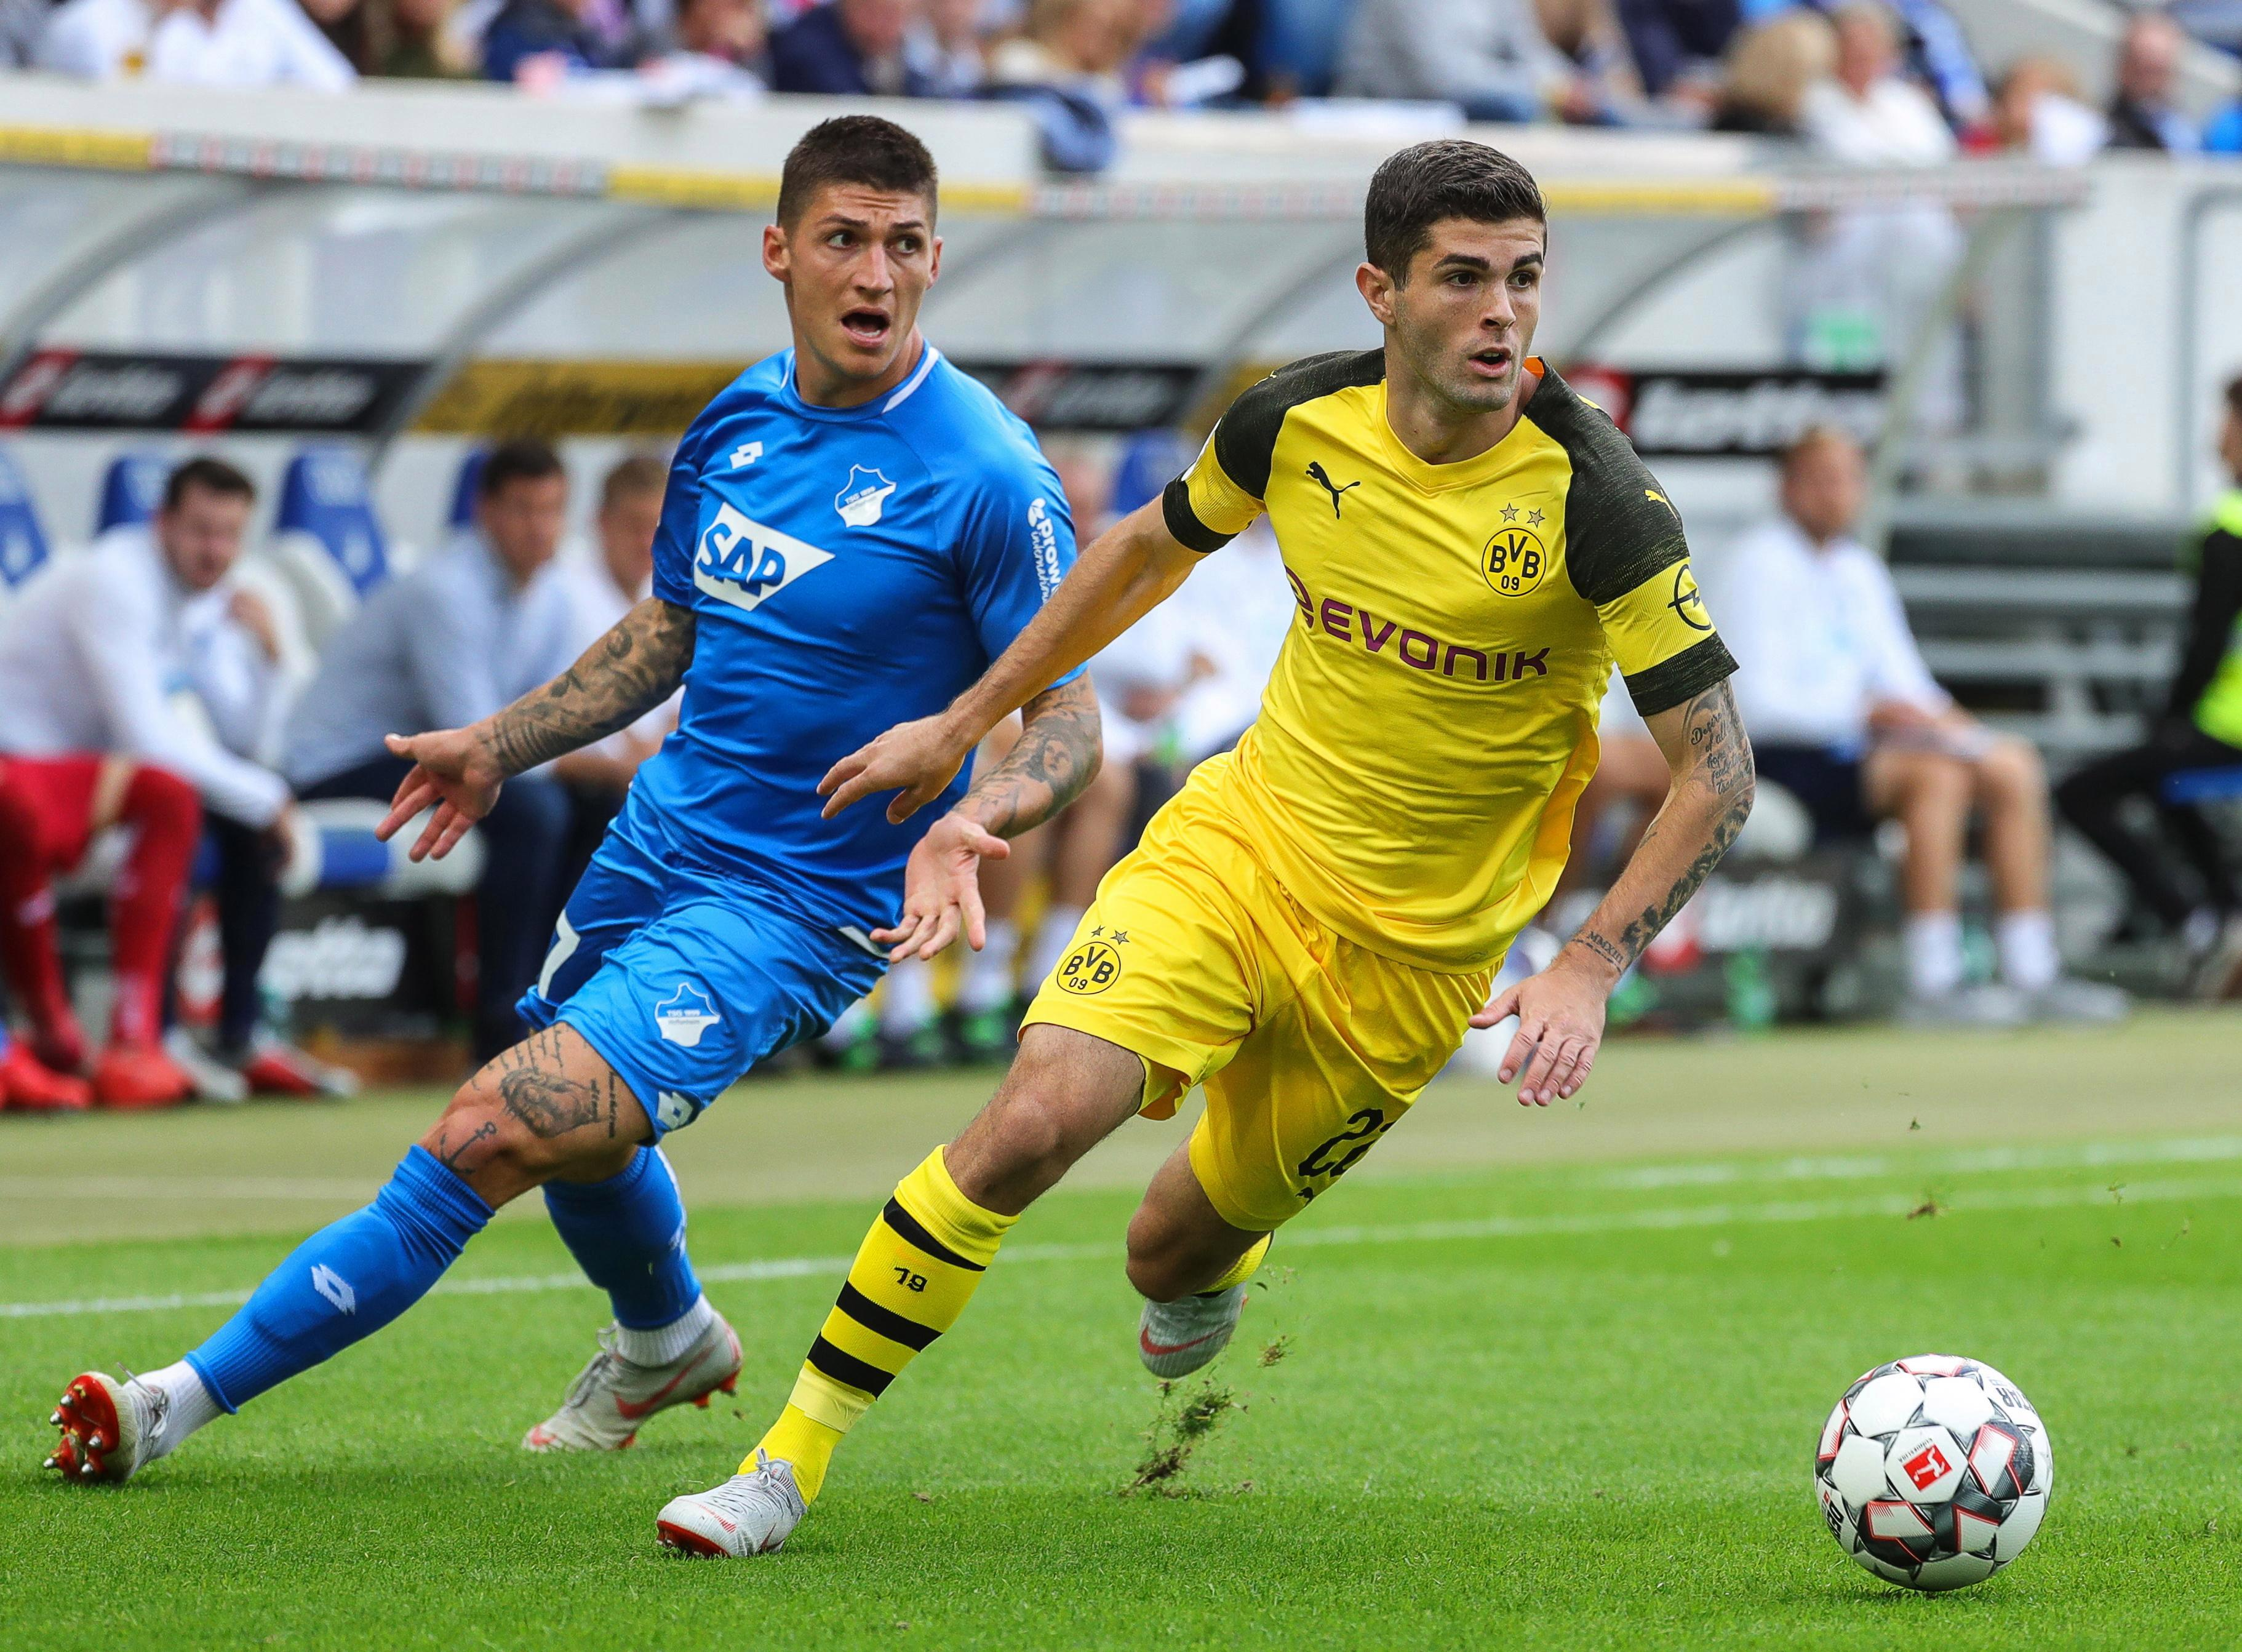 Christian Pulisic has been a sensation since making his Dortmund debut aged 17